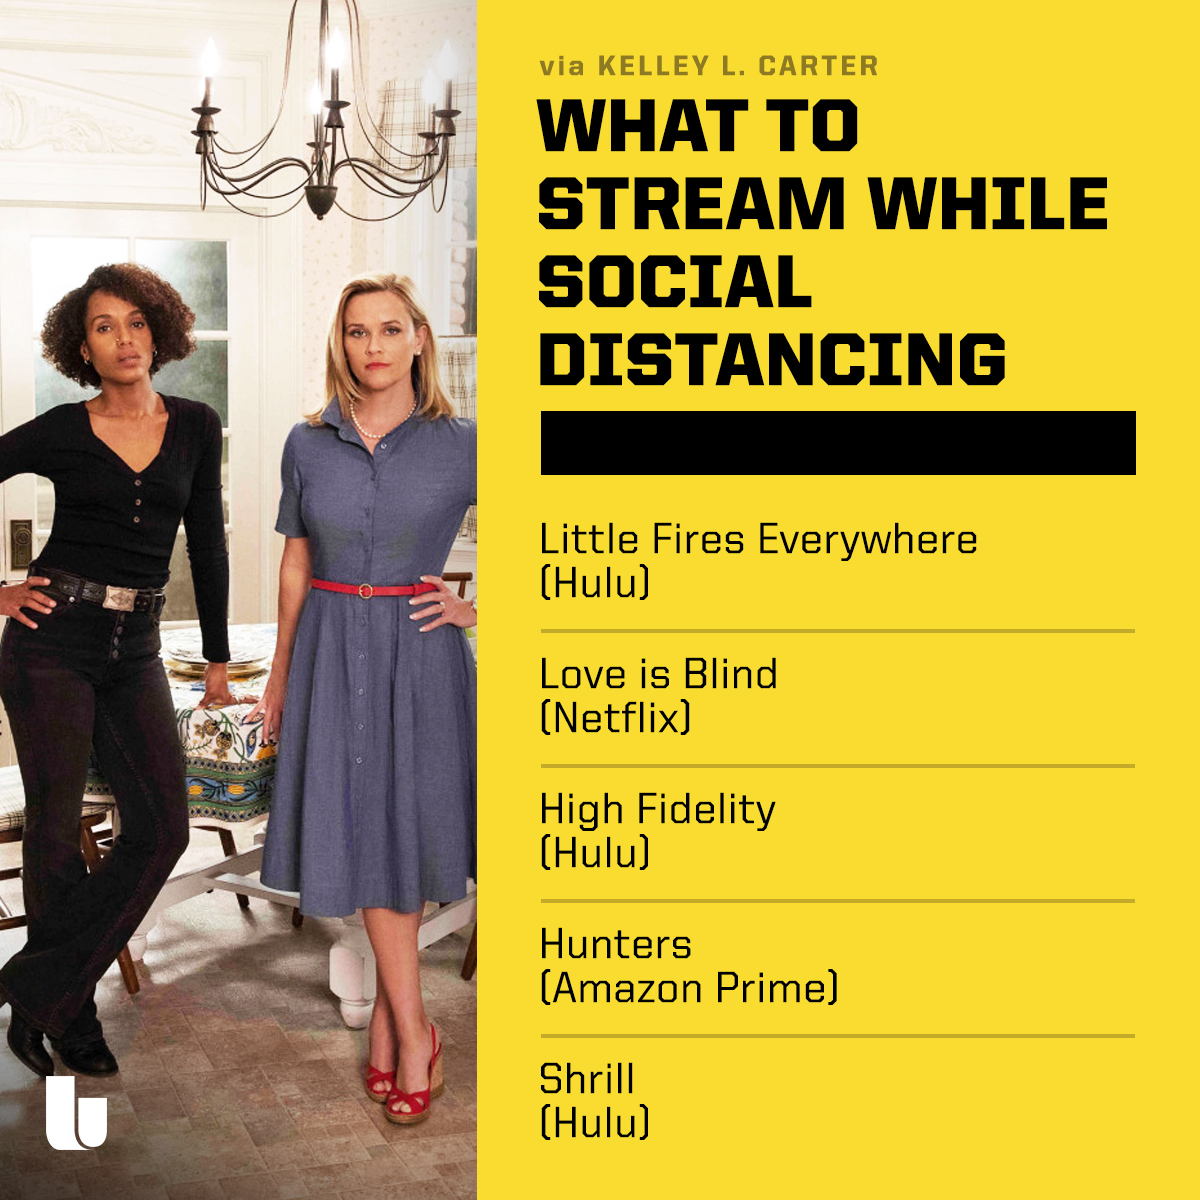 What to stream while the coronavirus keeps you in the house. via @KelleyLCarter